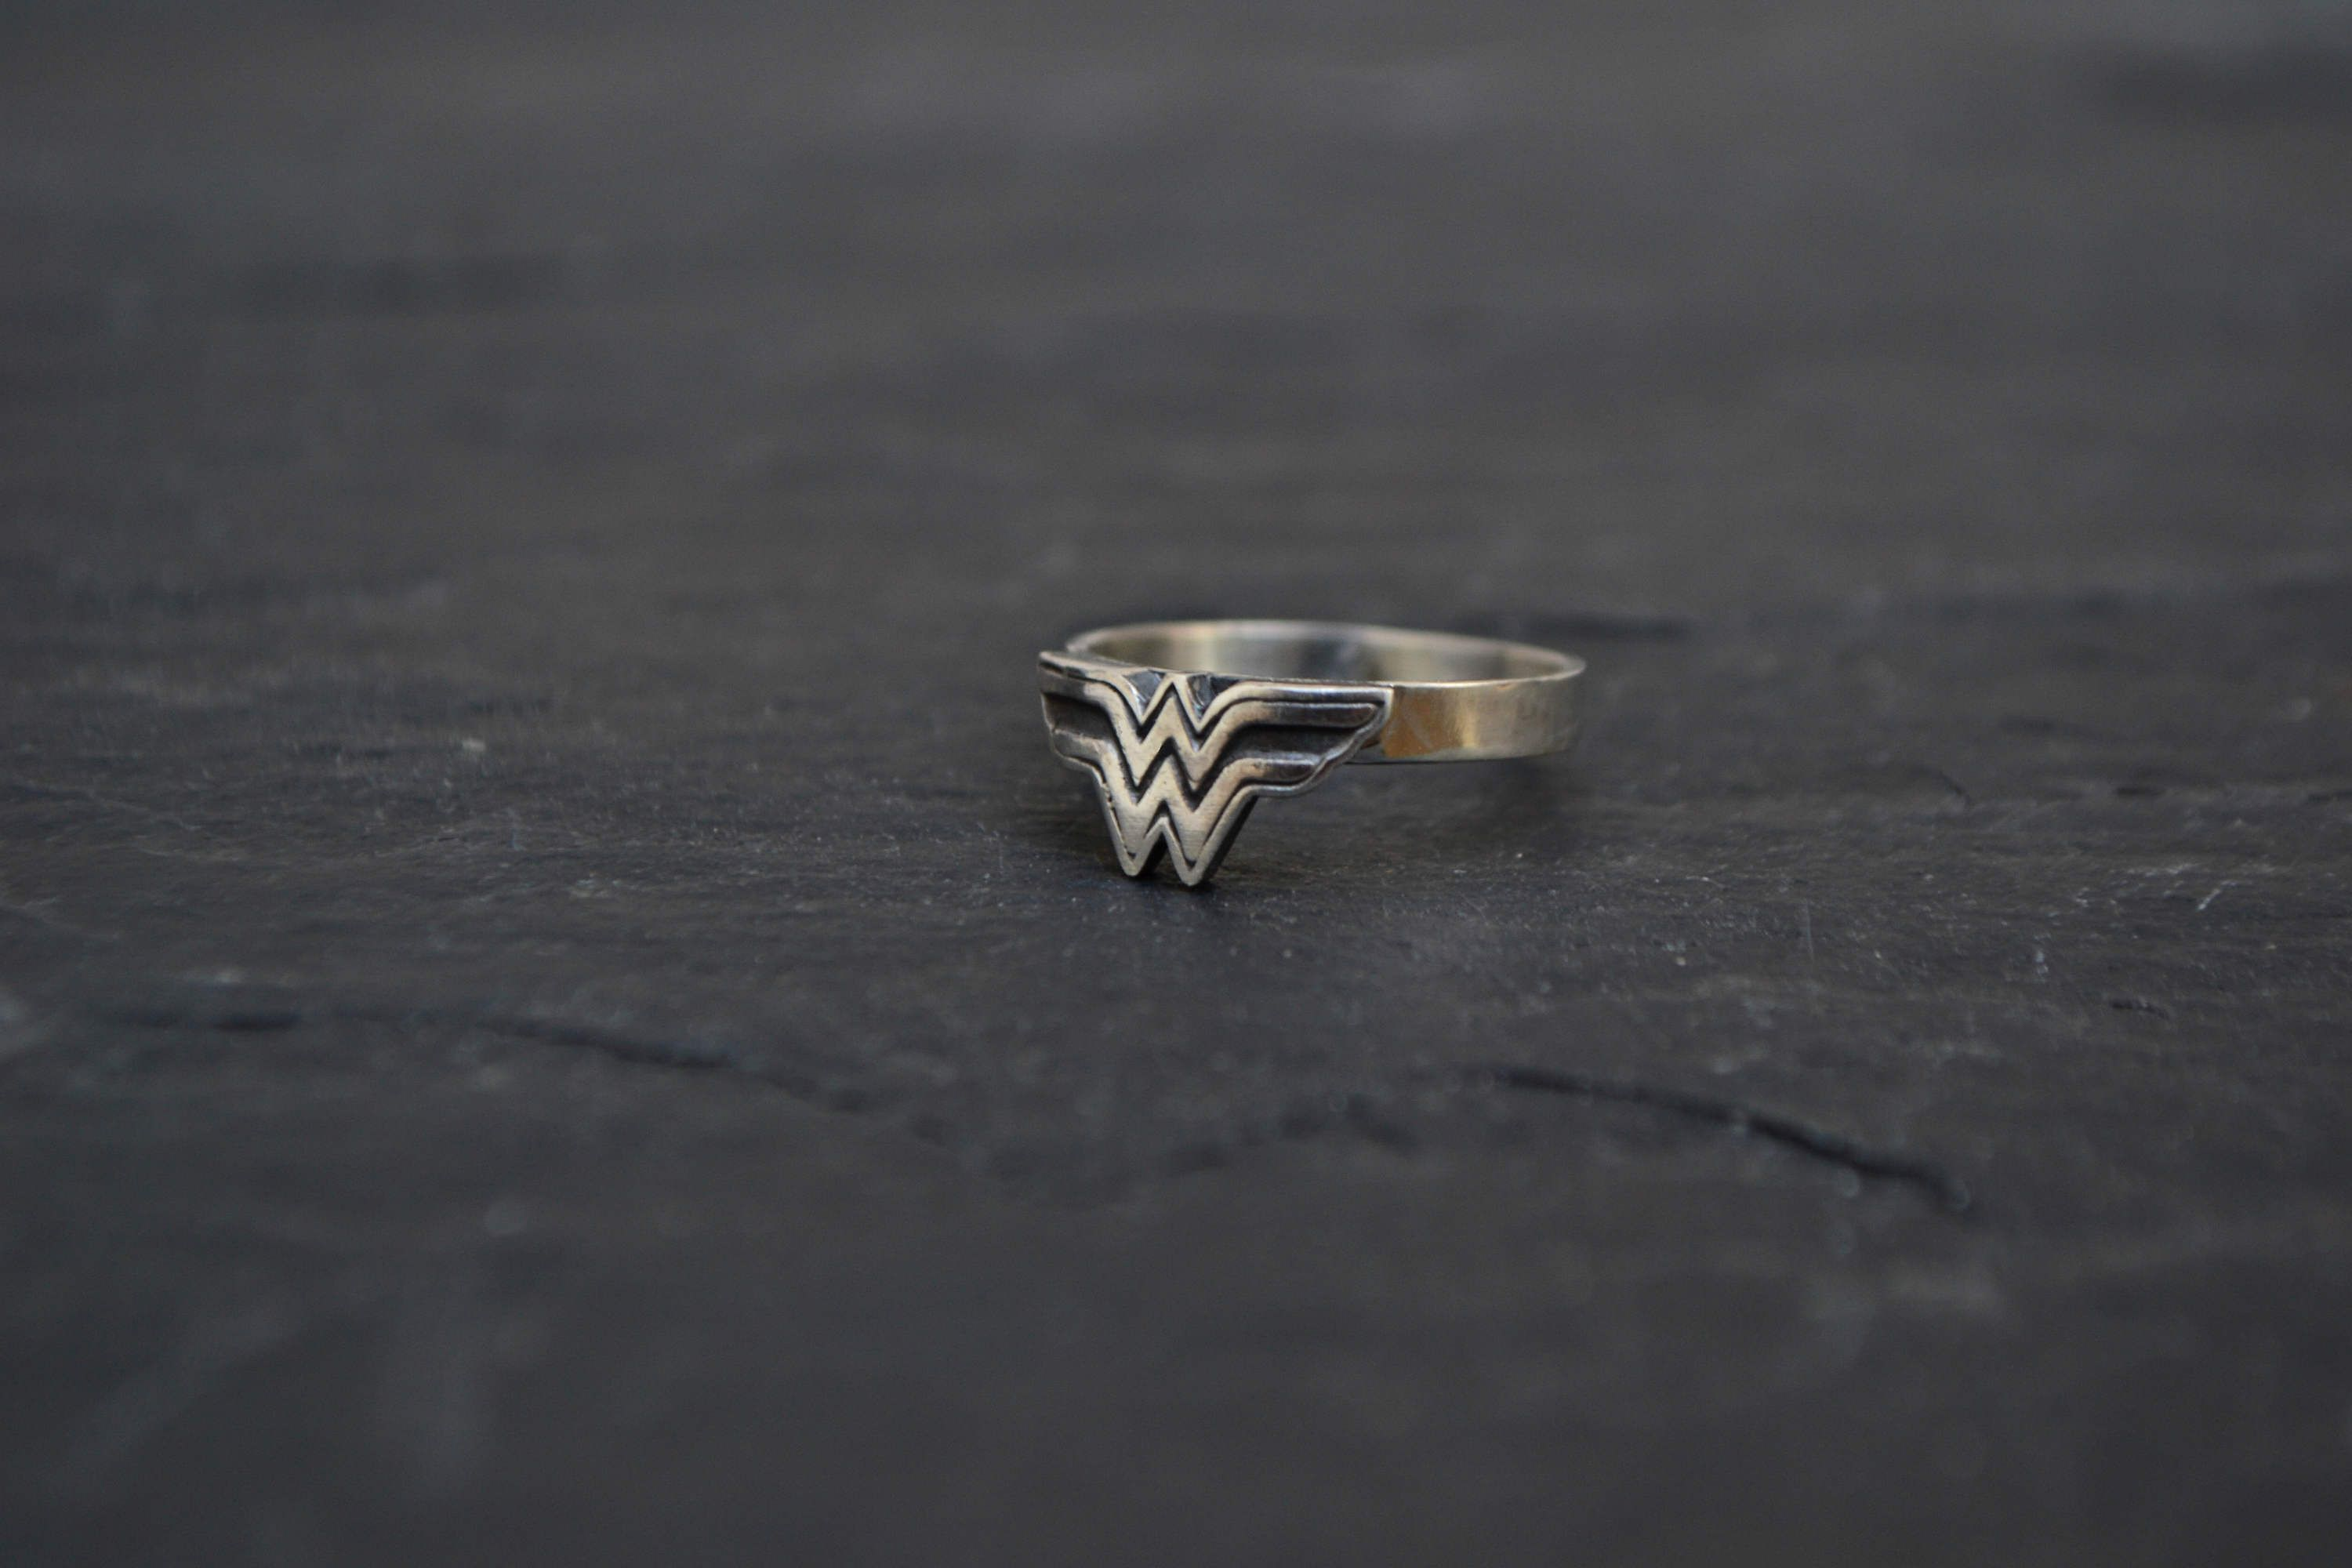 Wonder Woman Ring, Super Hero Wonder Woman 925 Sterling Silver Jewelry, Geeky Nerdy Girl Ring Jewelry by GeekMeABreak on Etsy https://www.etsy.com/listing/504698634/wonder-woman-ring-super-hero-wonder